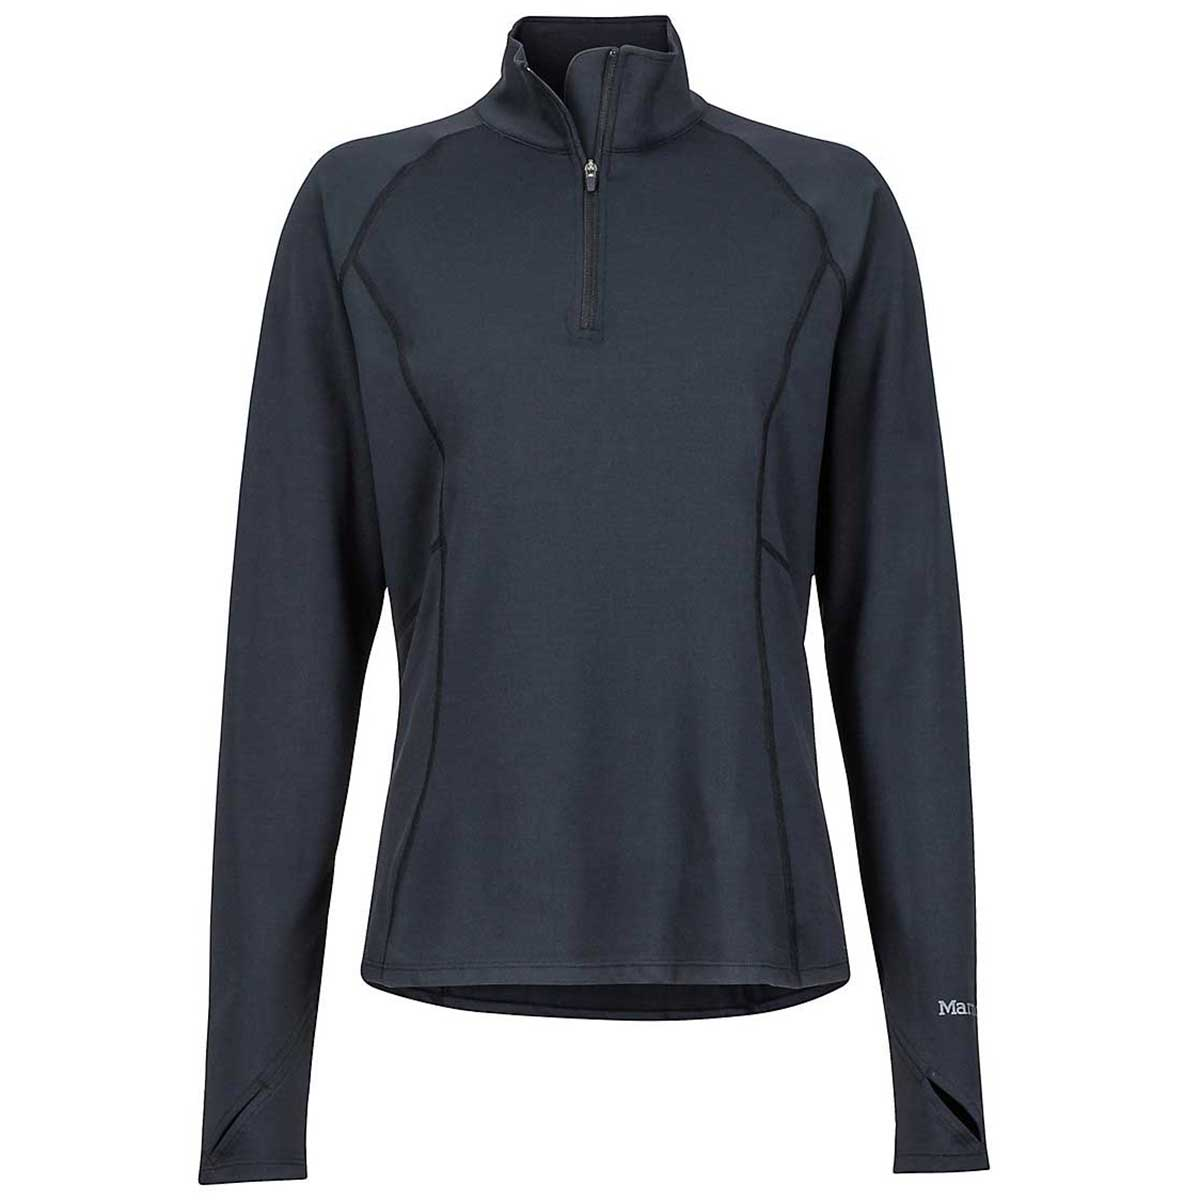 Marmot Midweight Meghan 1/2 Zip Top in Black